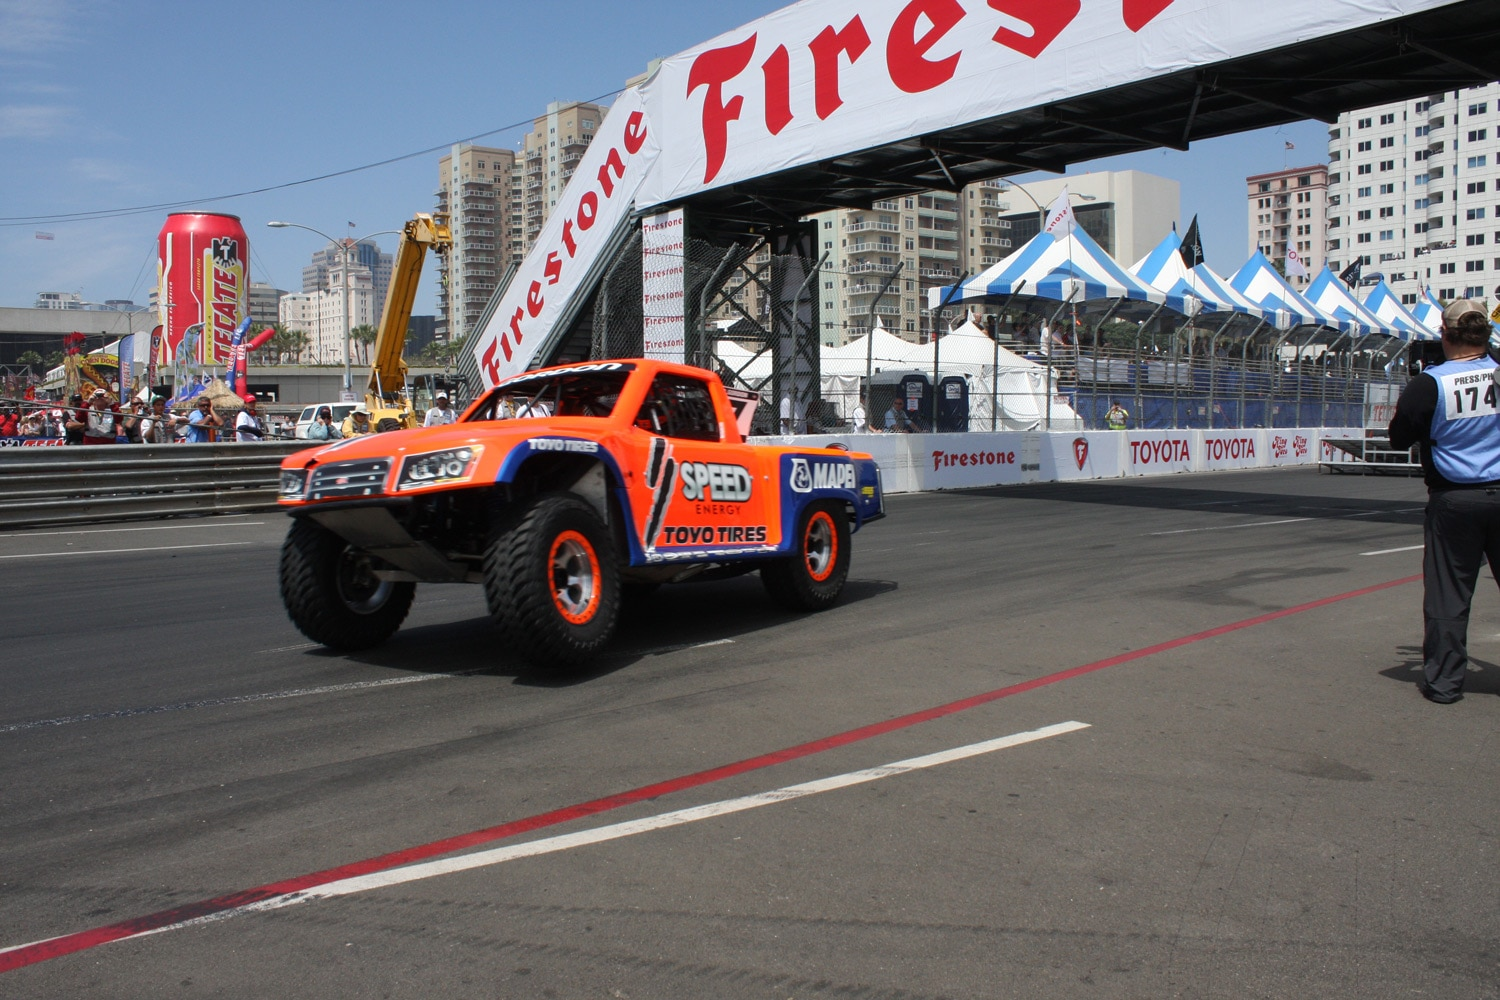 1304OR 39+Robby Gordon SST Stadium Super Trucks 2013 Long Beach Grand Prix